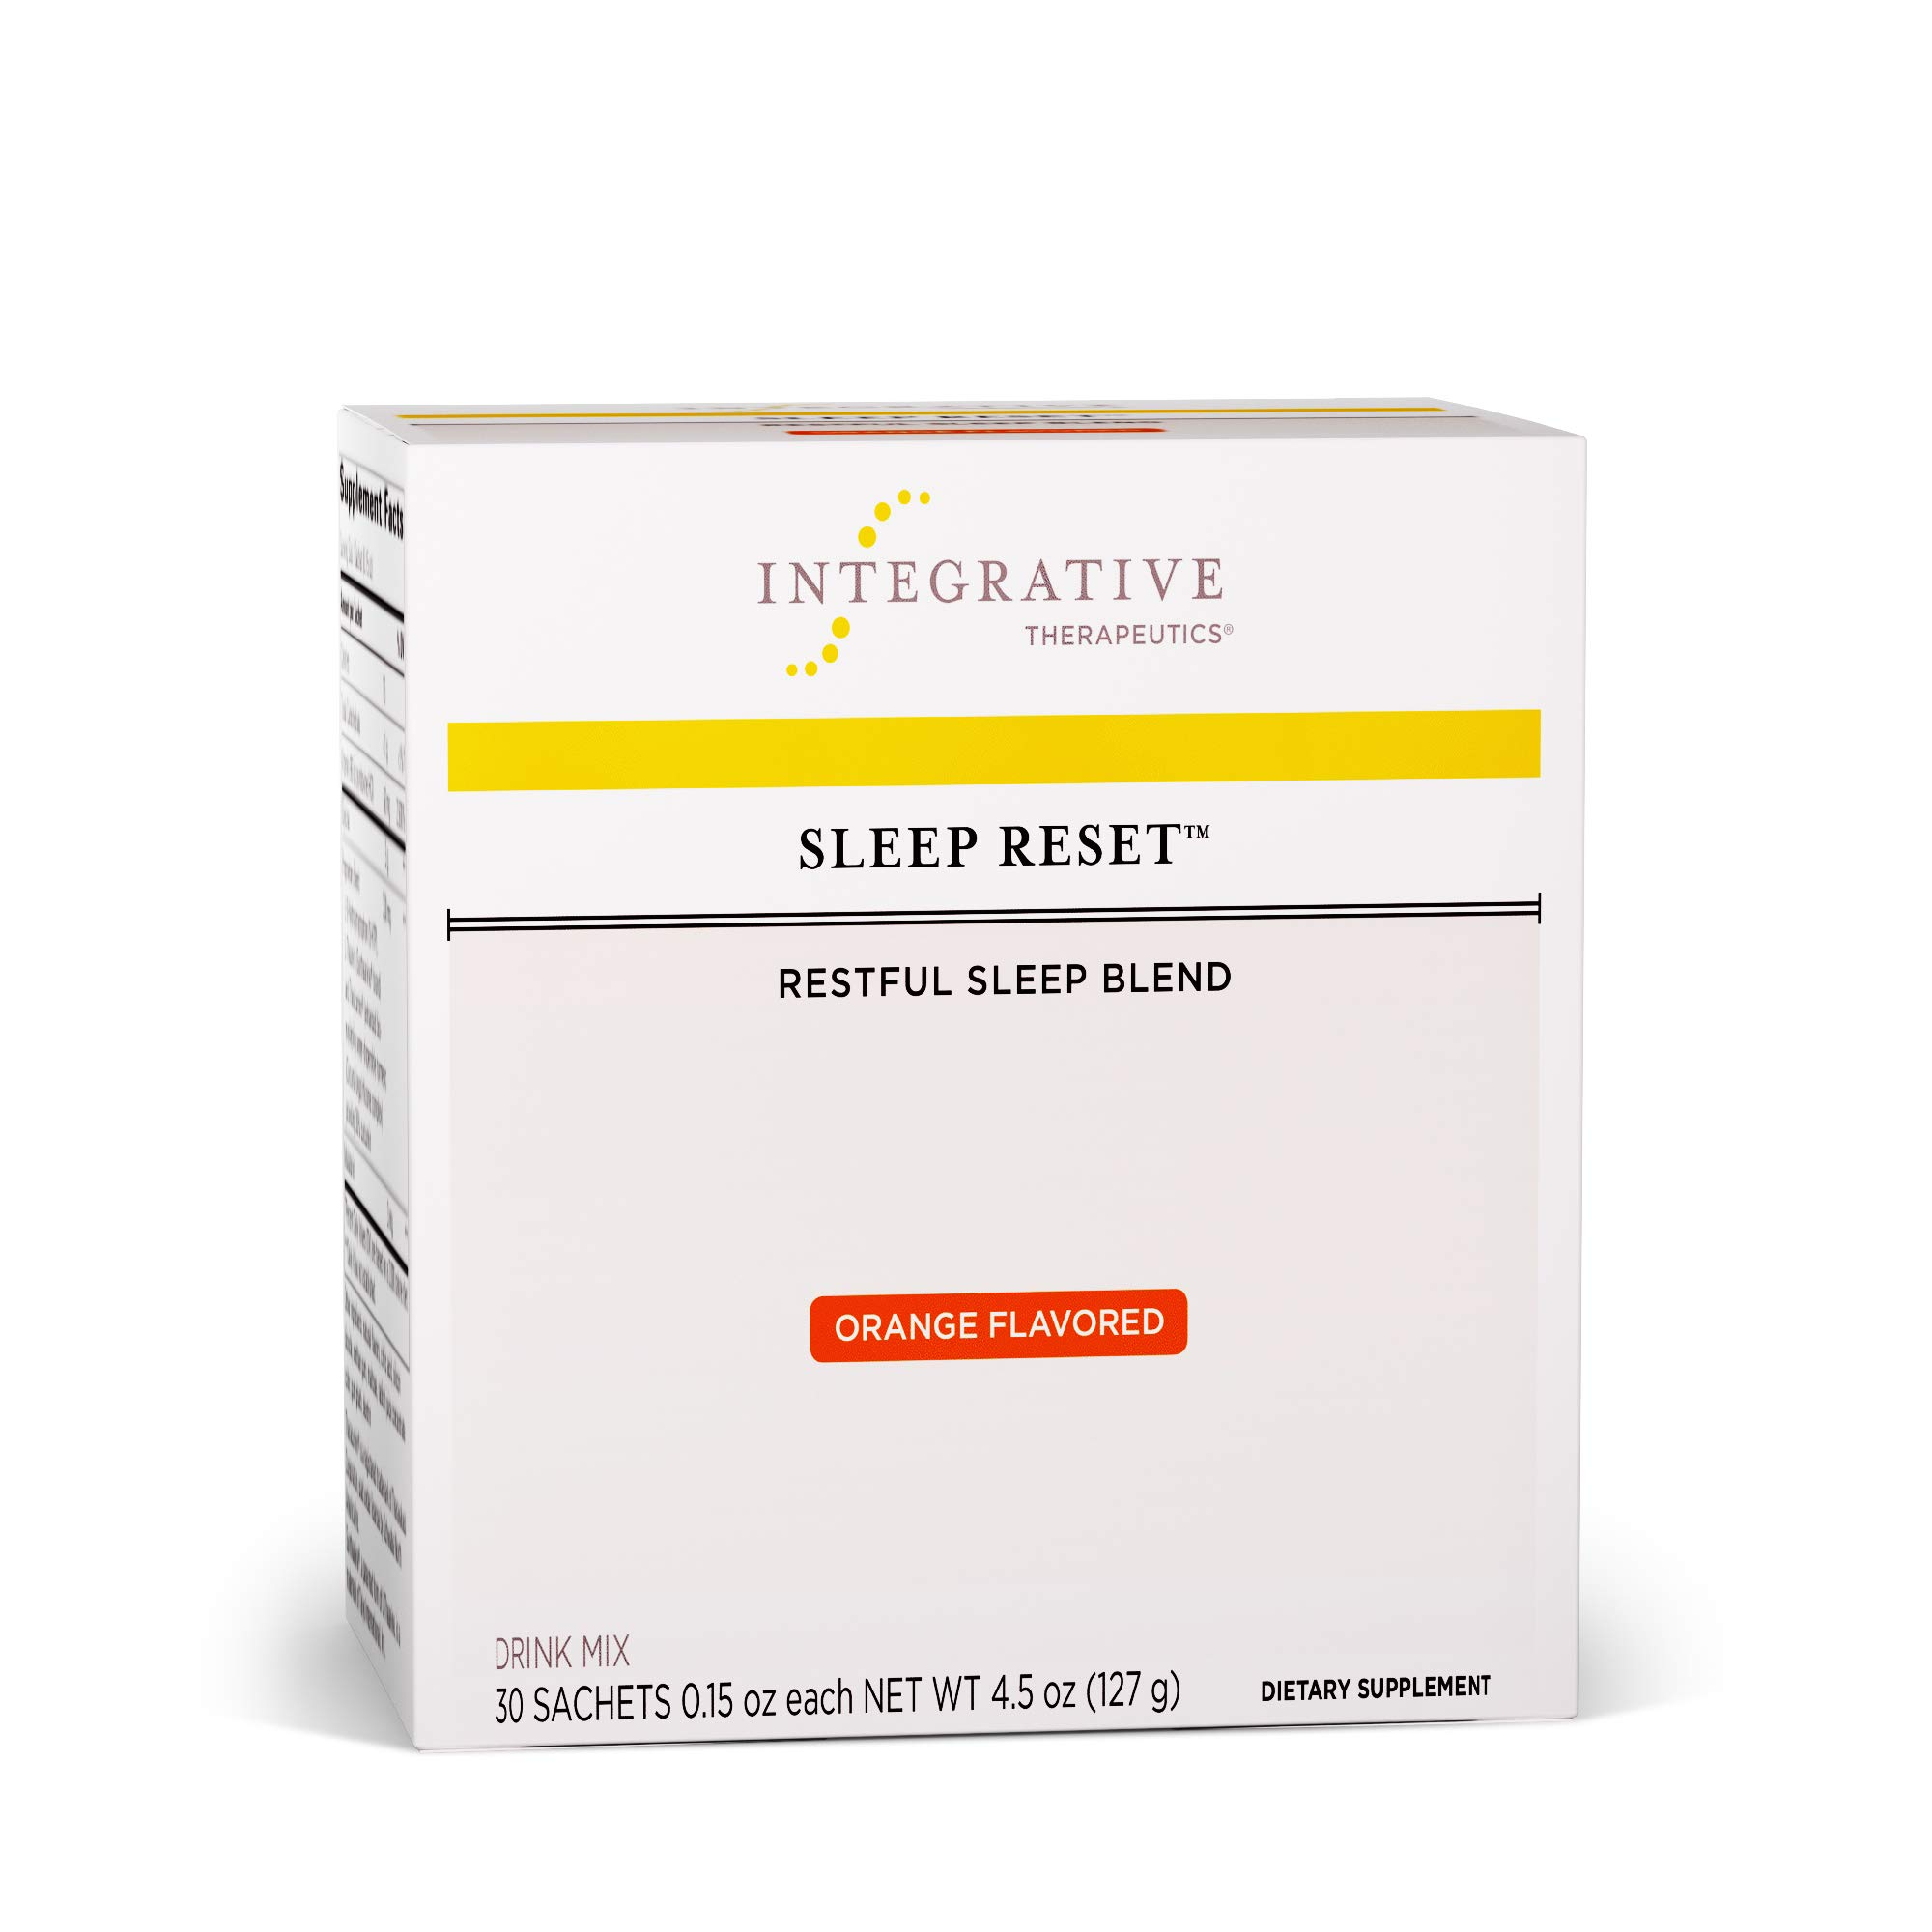 Integrative Therapeutics - Sleep Reset - Restful Sleep Blend - Melatonin, Glycine, L-Theanine, 5-HTP, Theracurmin, and More to Support Sleep & Healthy Stress Response - Orange Flavor - 30 Sachets